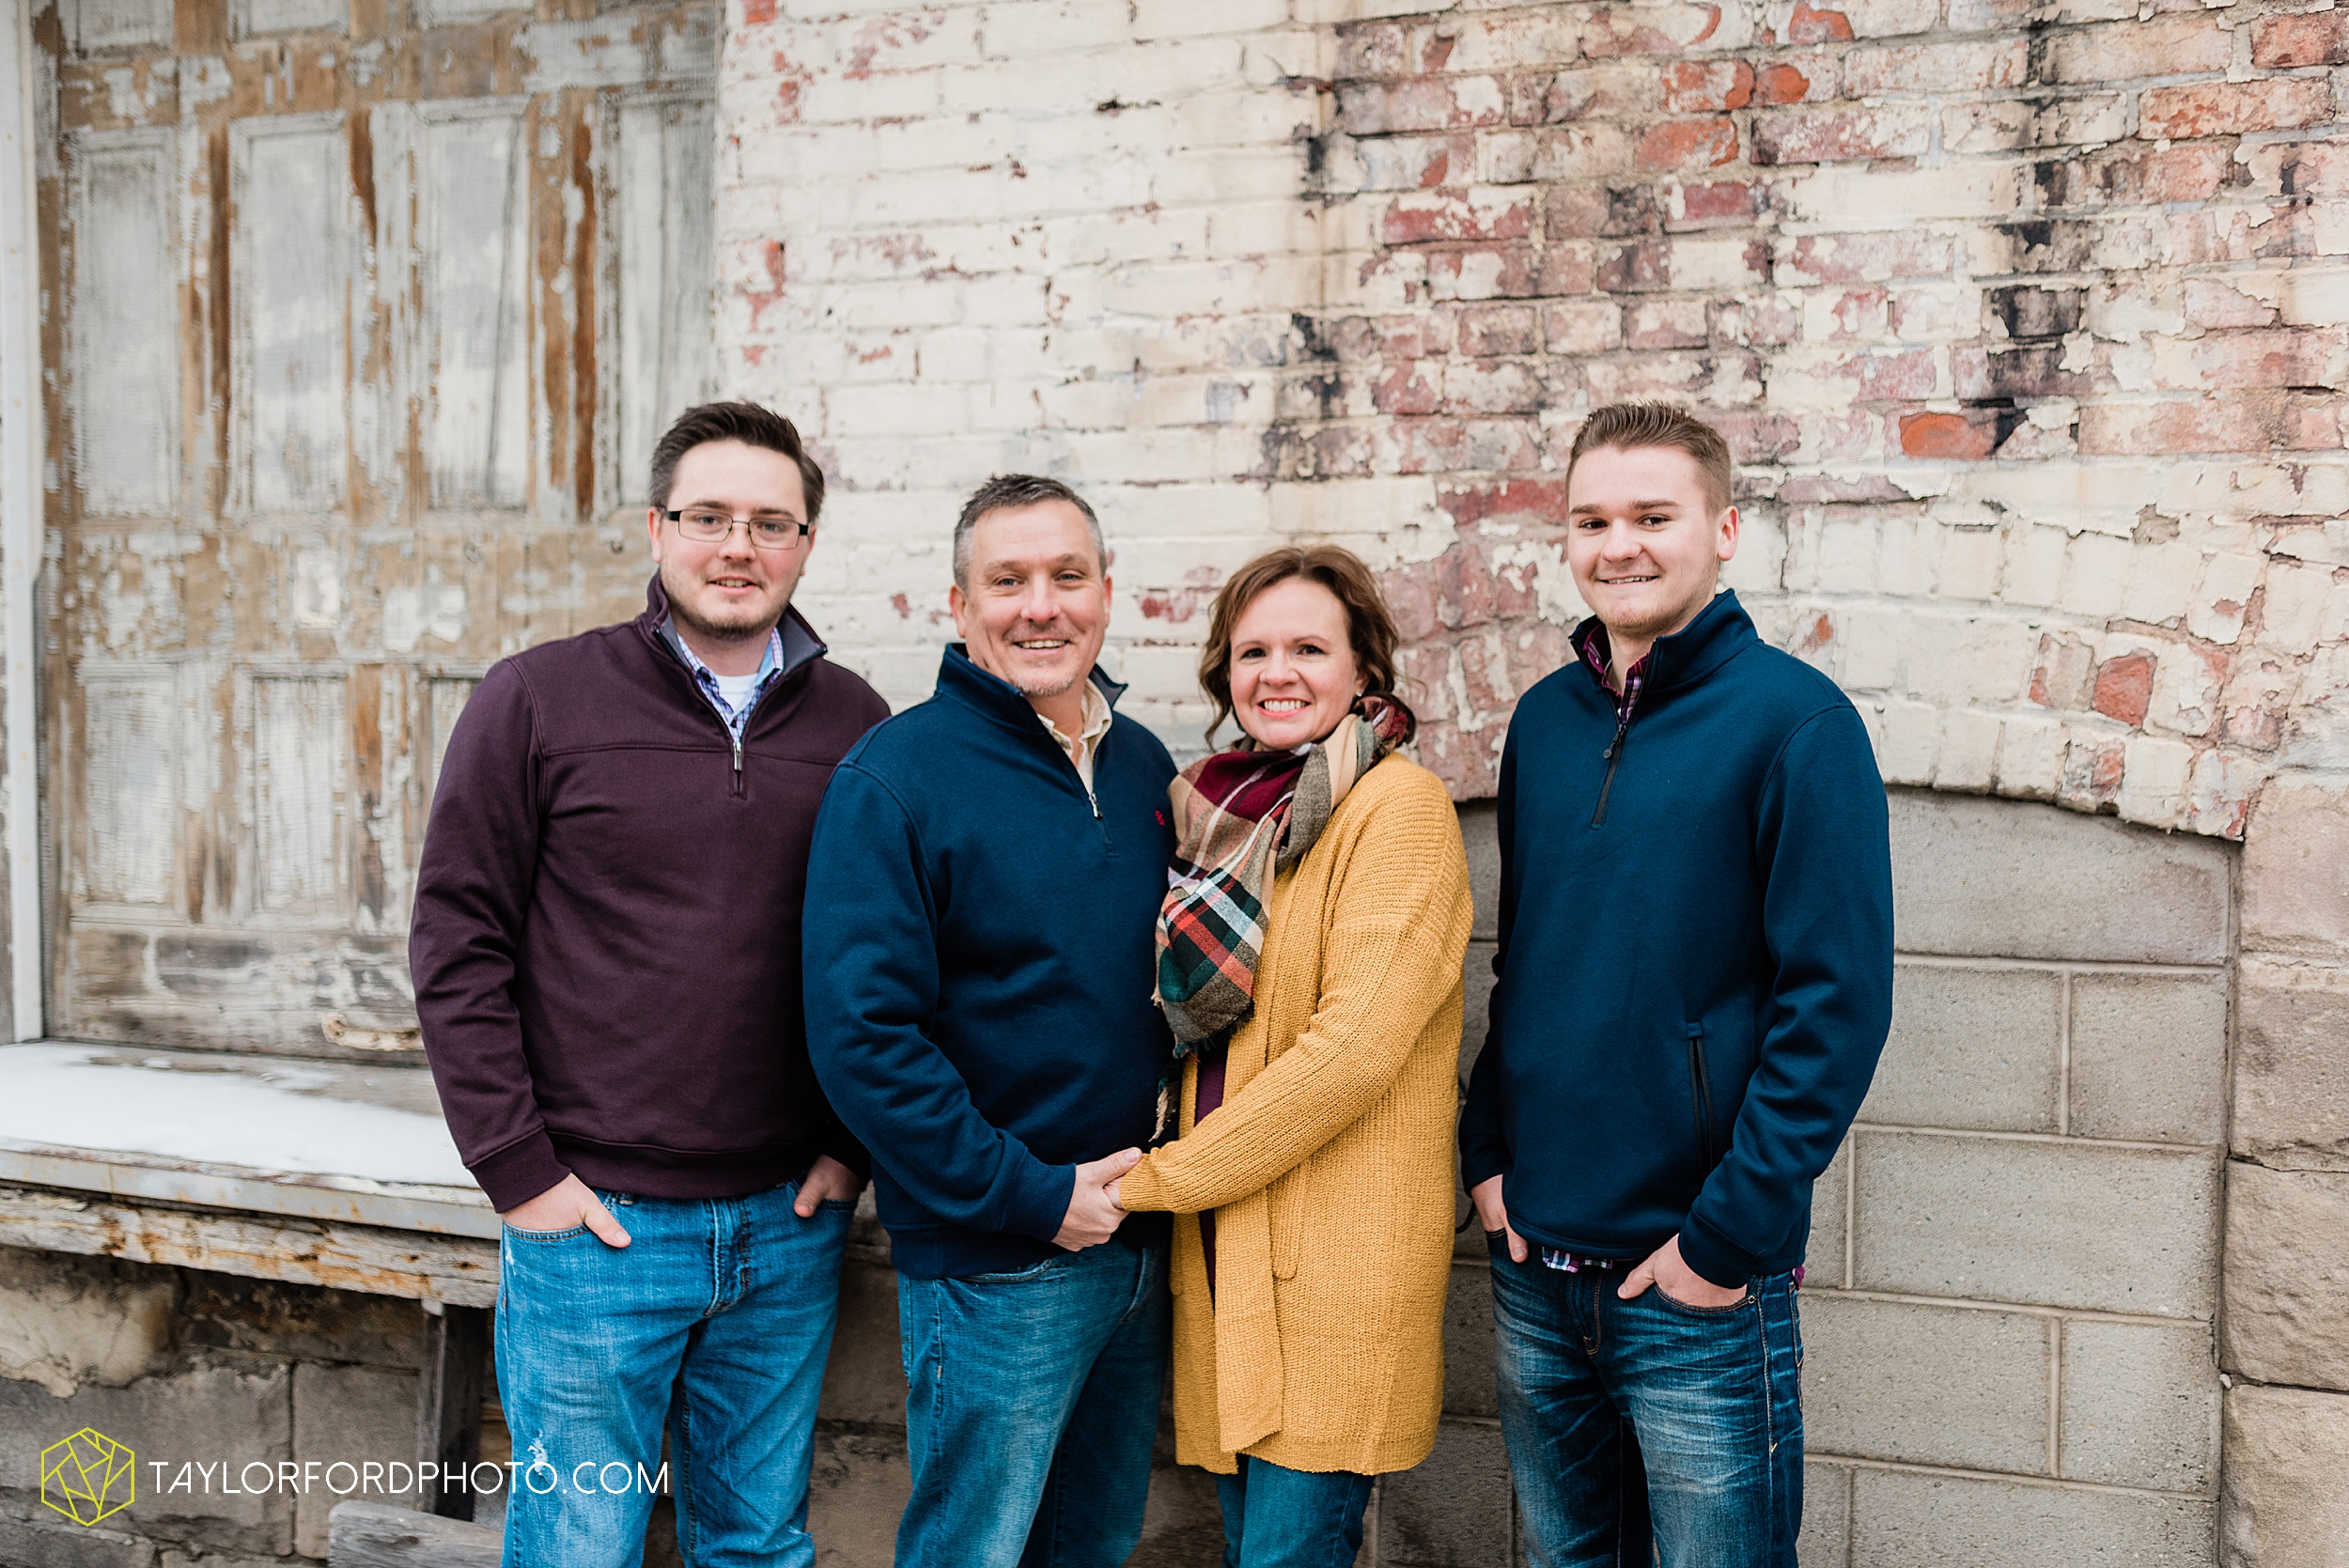 thompson-extended-family-van-wert-ohio-downtown-family-photography-taylor-ford-hirschy-photographer_2091.jpg